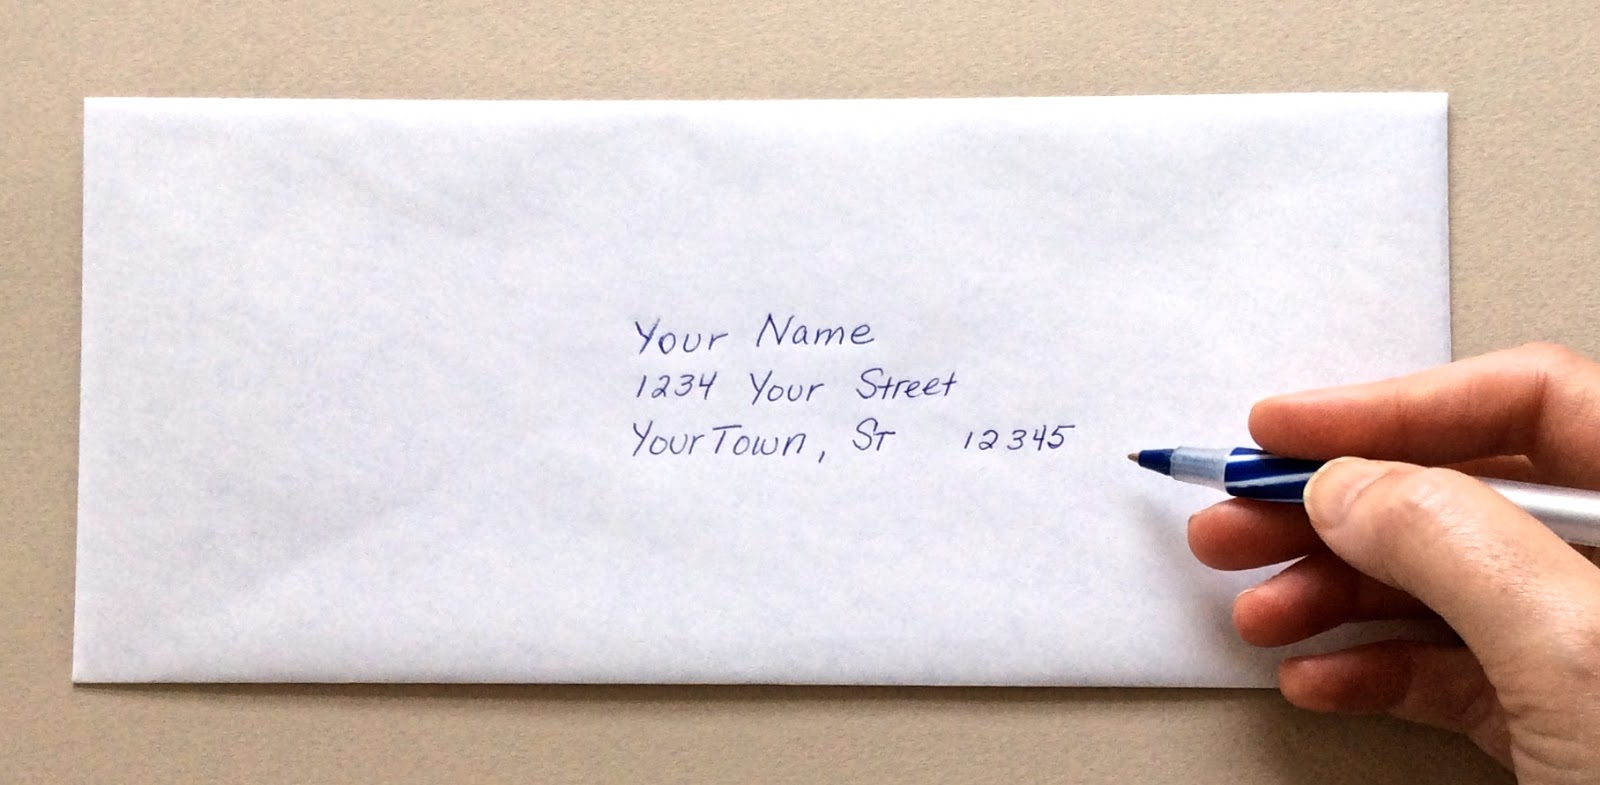 Where To Put Stamp On Envelope My Web Value